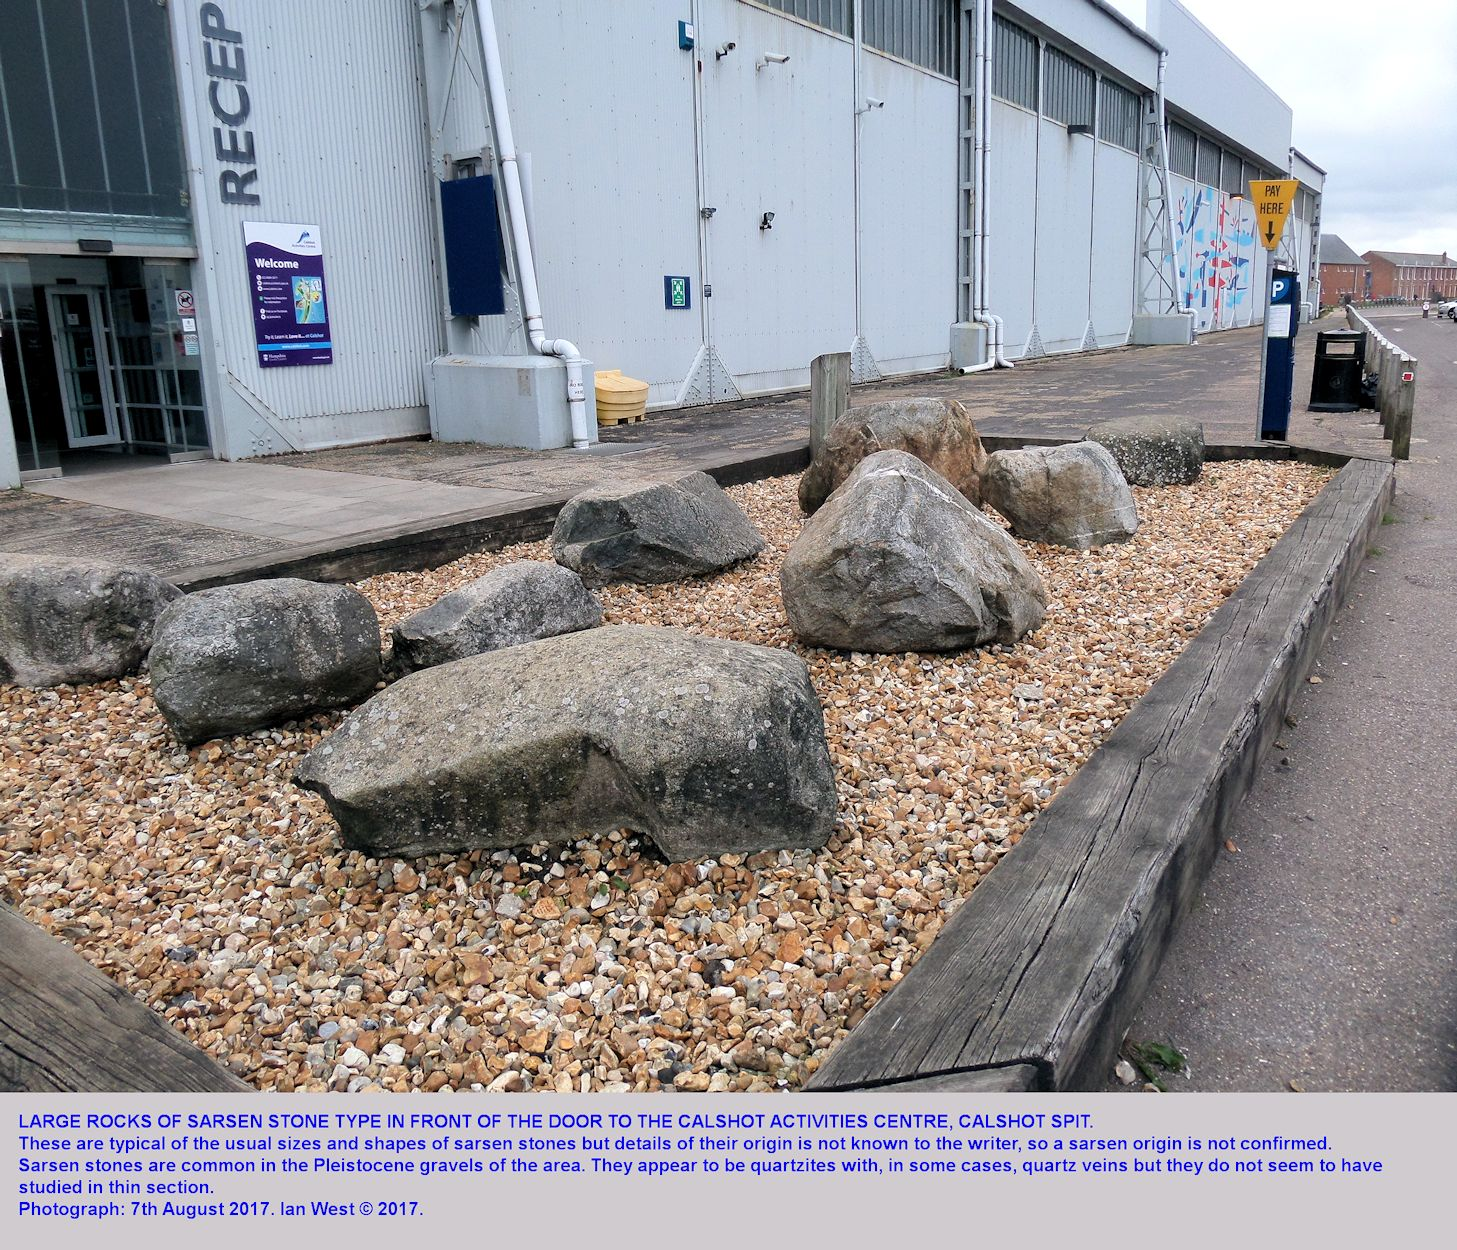 Large rocks on display adjacent to the entrance to the Activities Centre at Calshot Spit